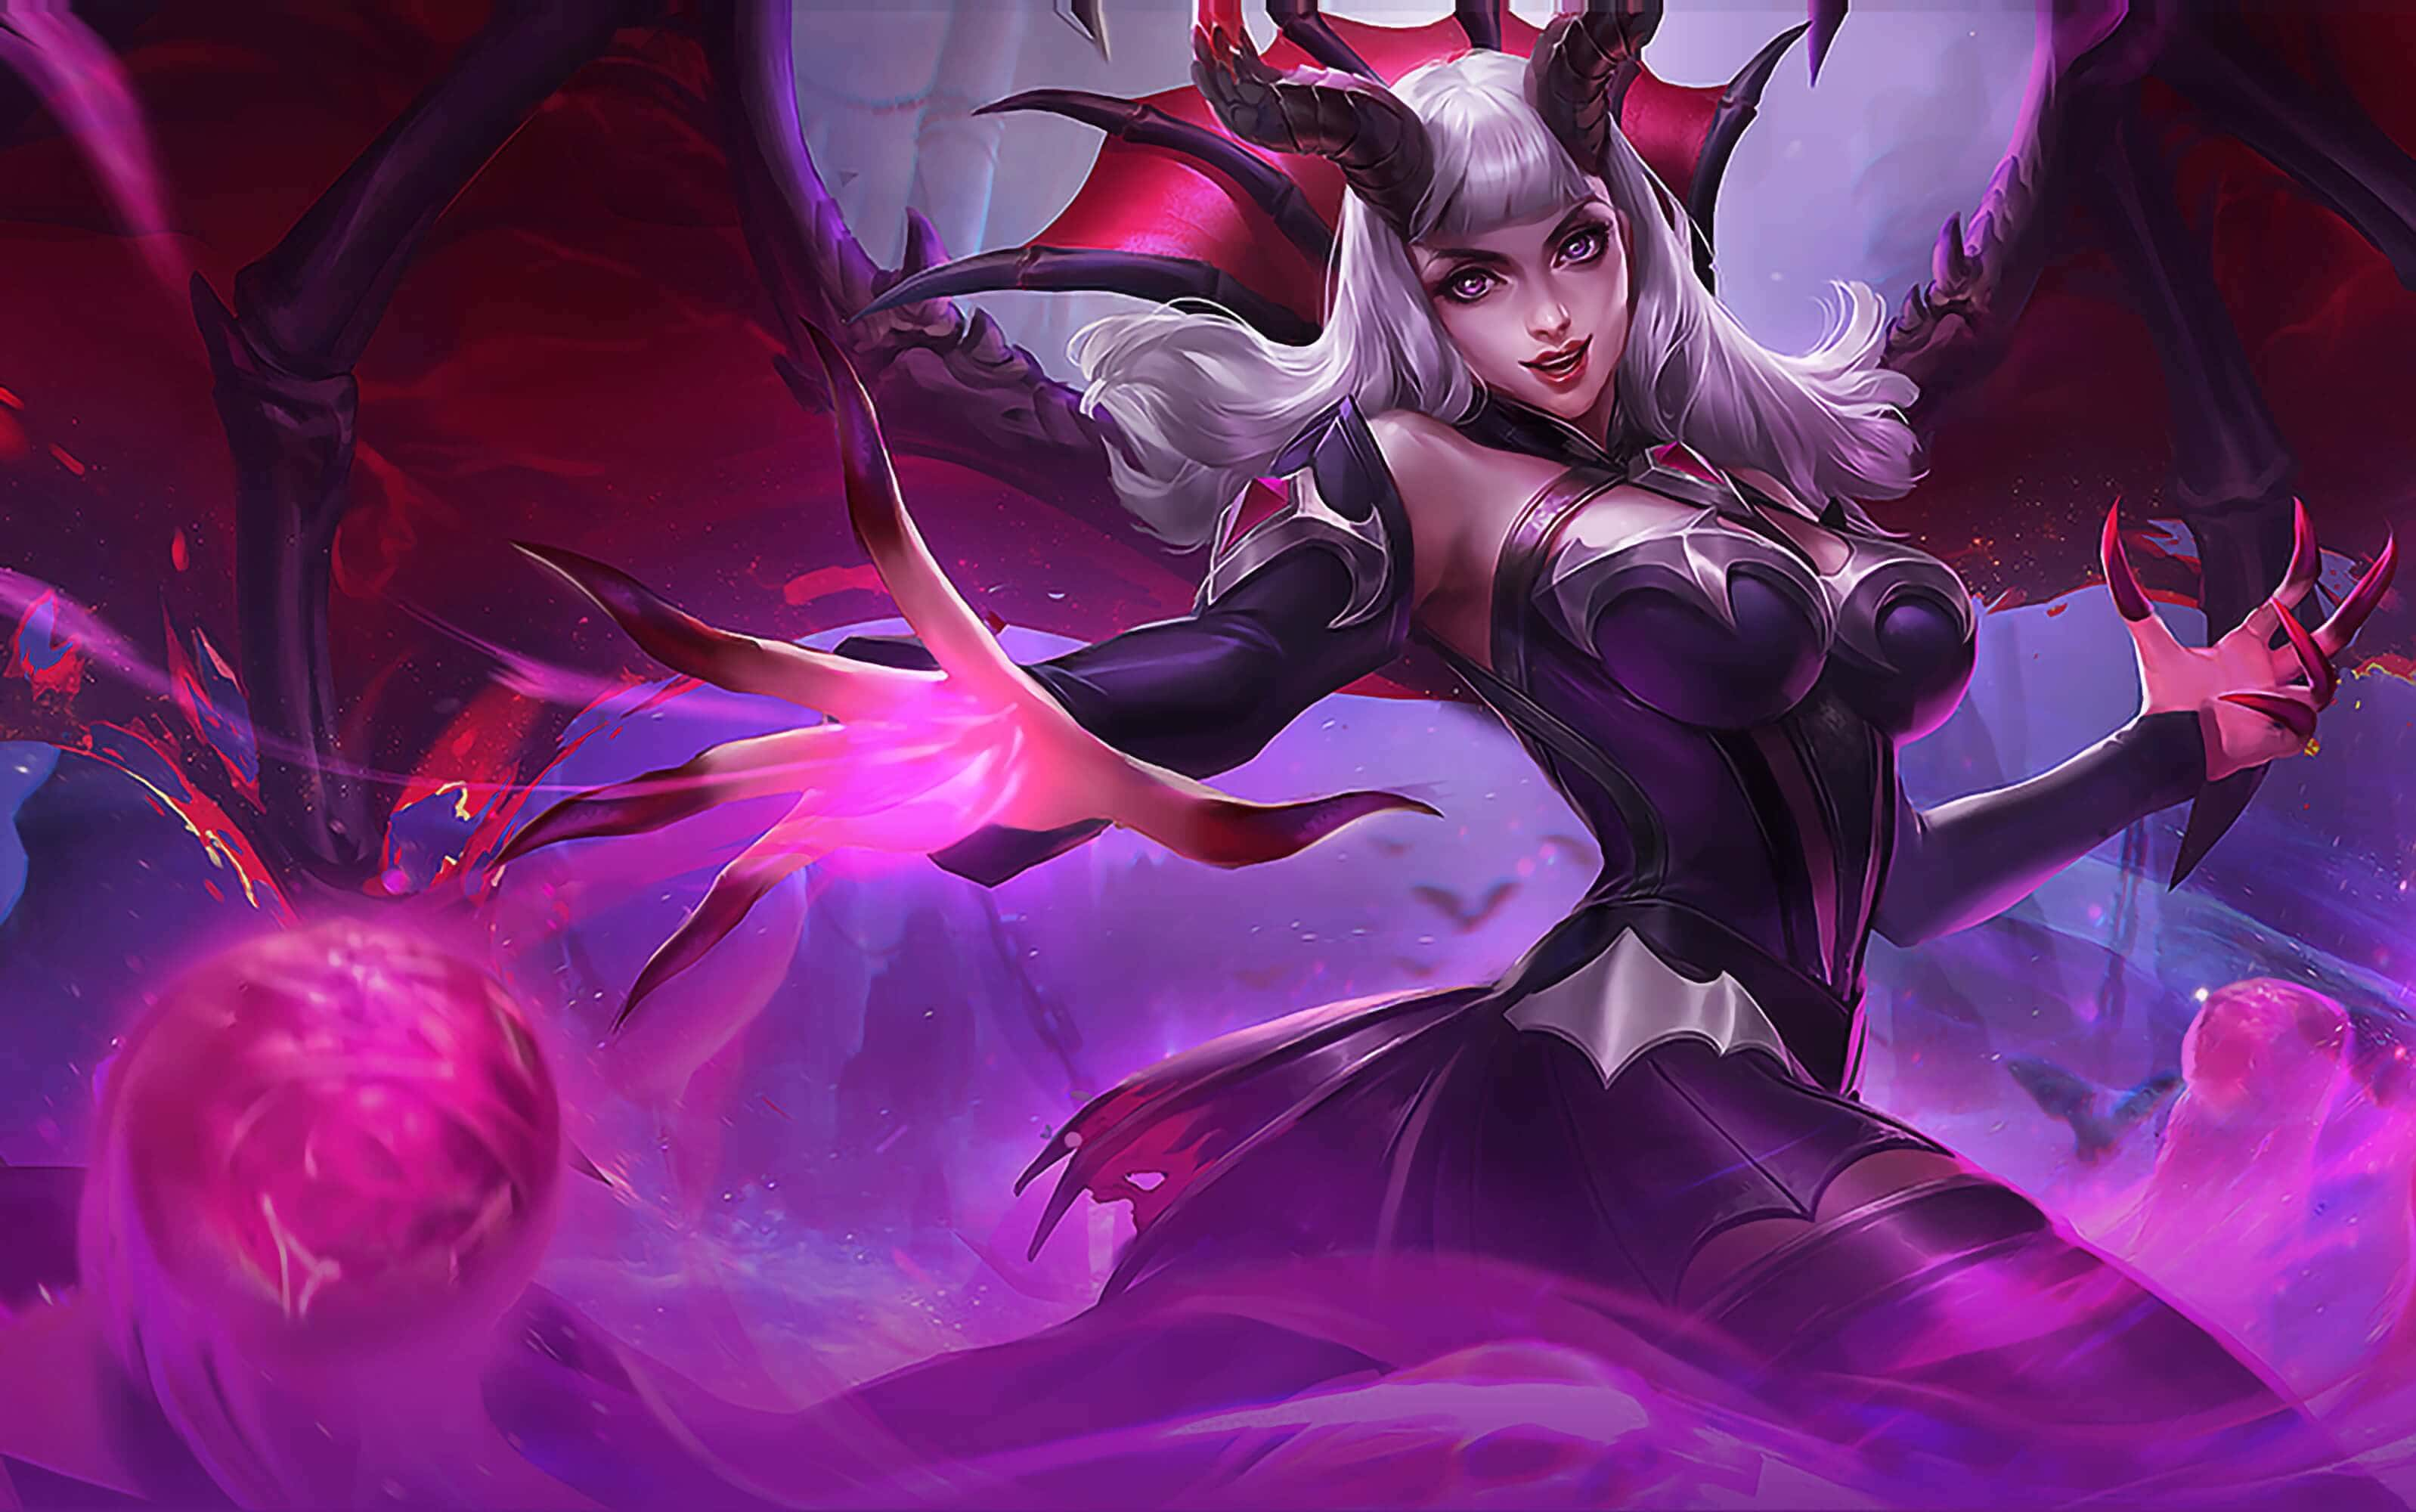 Wallpaper Alice Queen of The Apocalypse Mobile Legends HD for PC - Hobigame.id